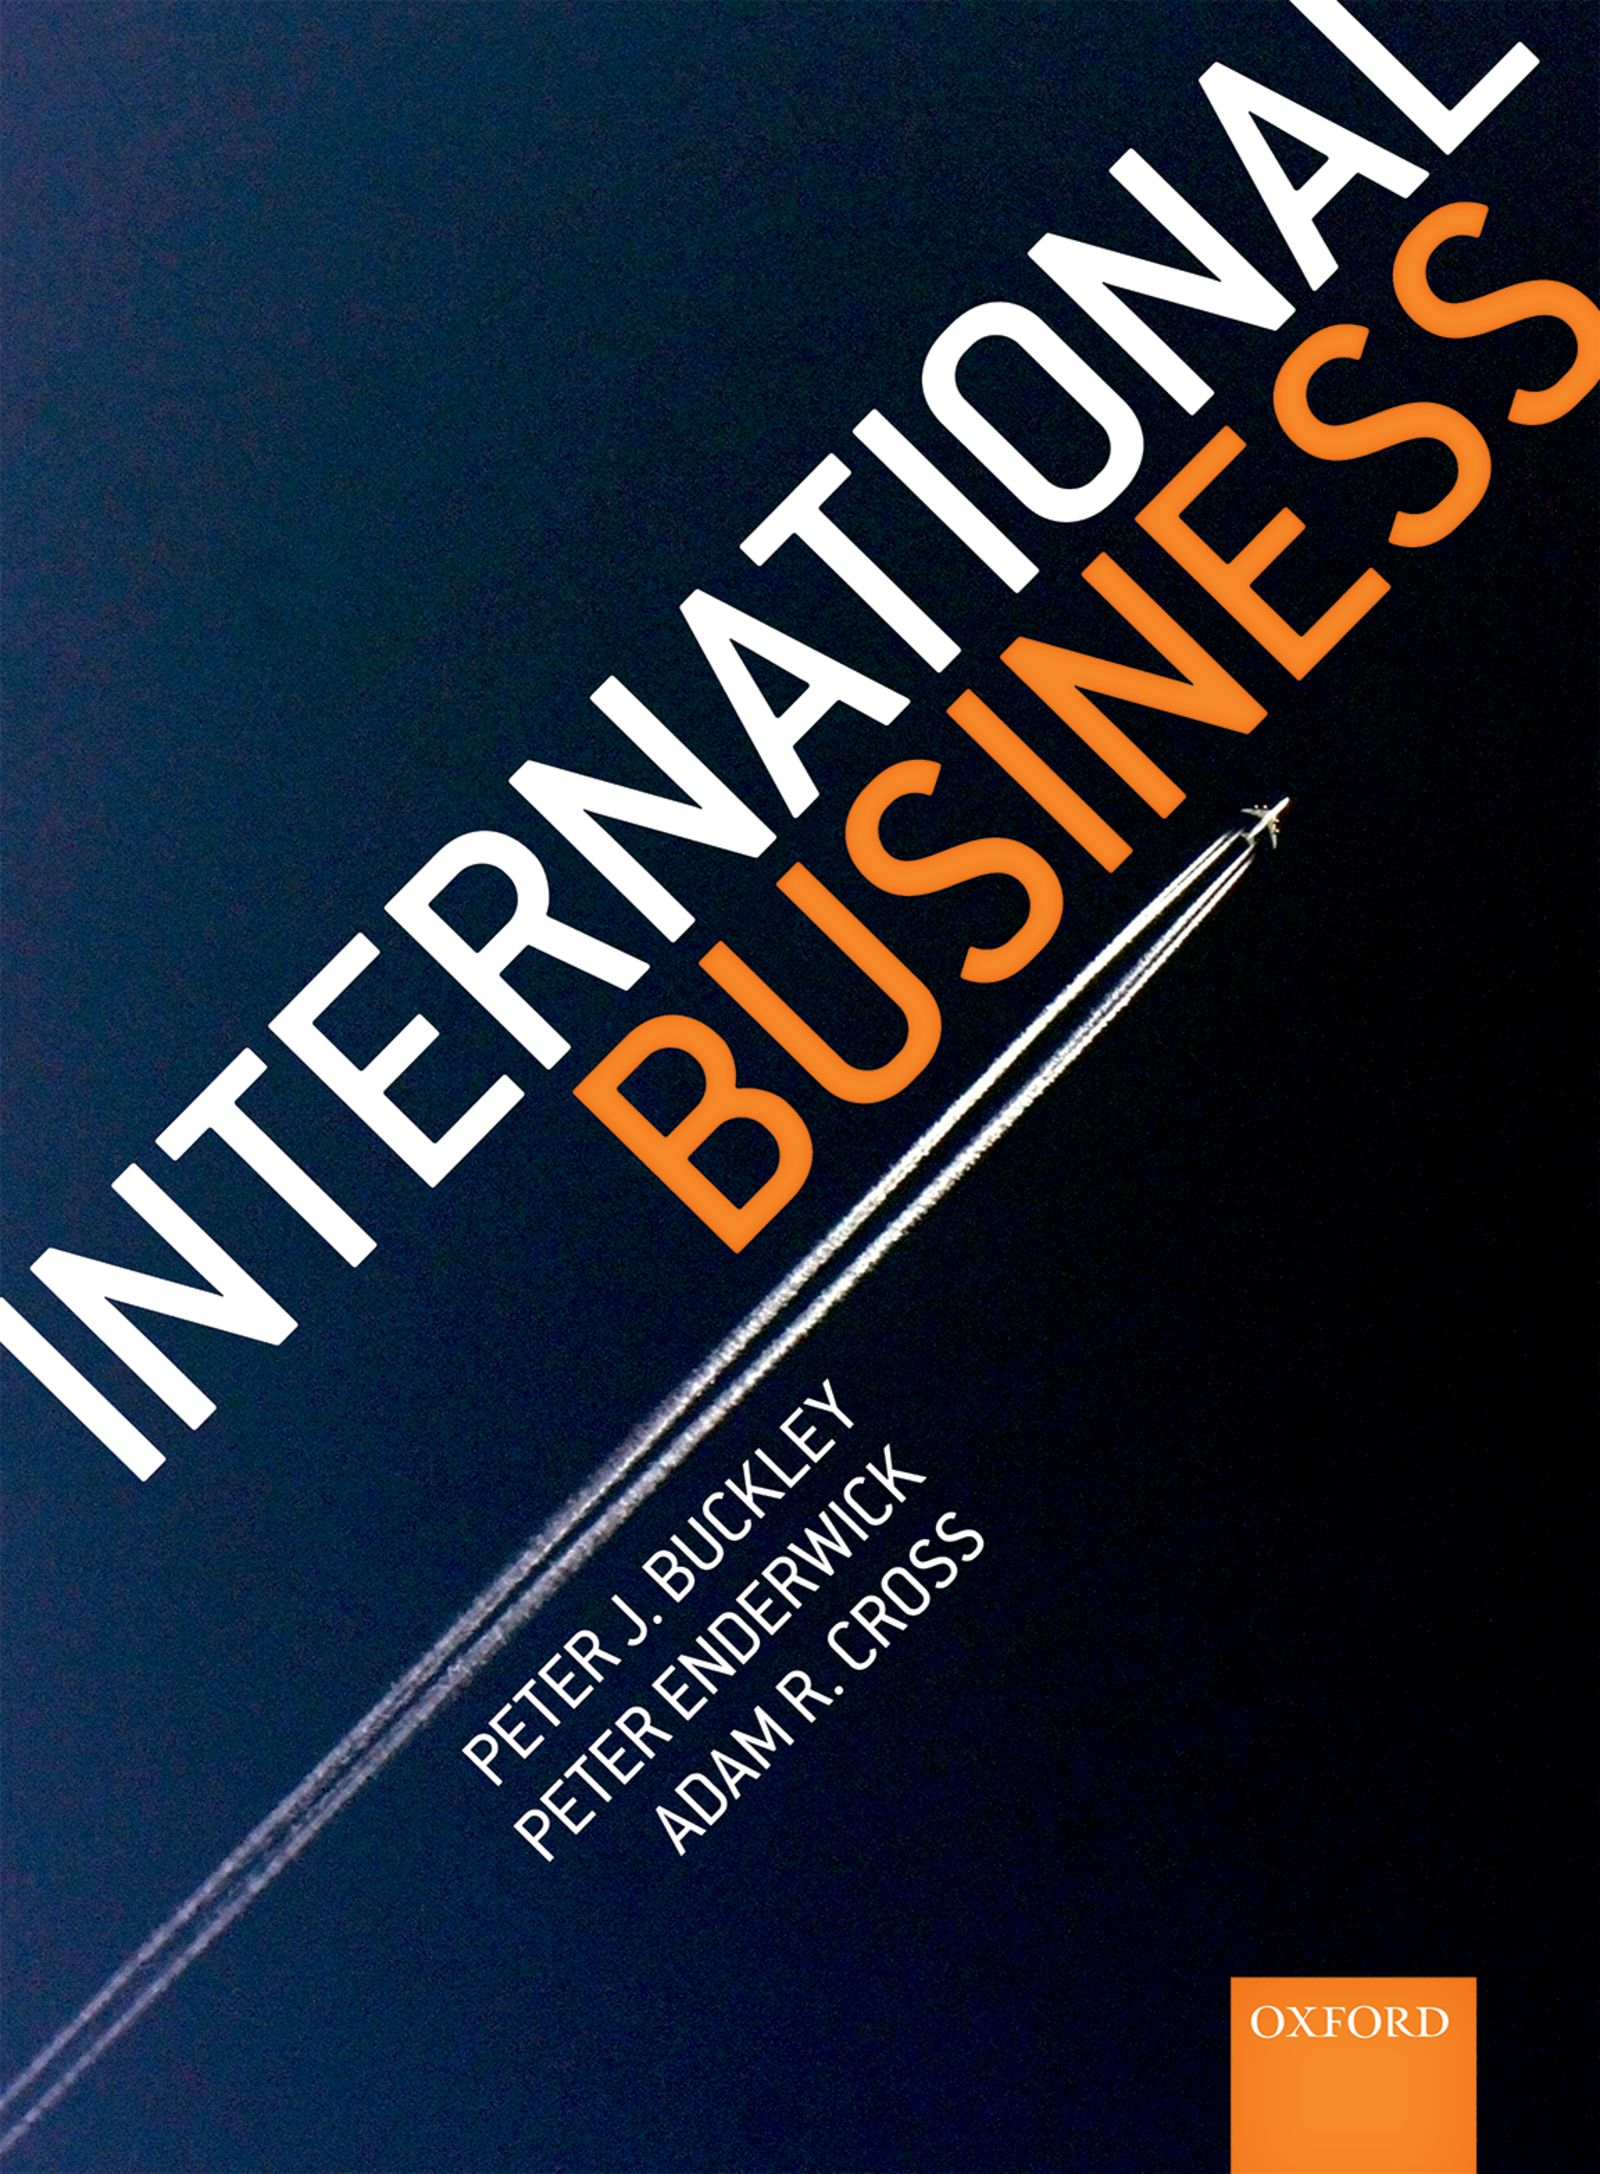 International Business Lecturer Resources